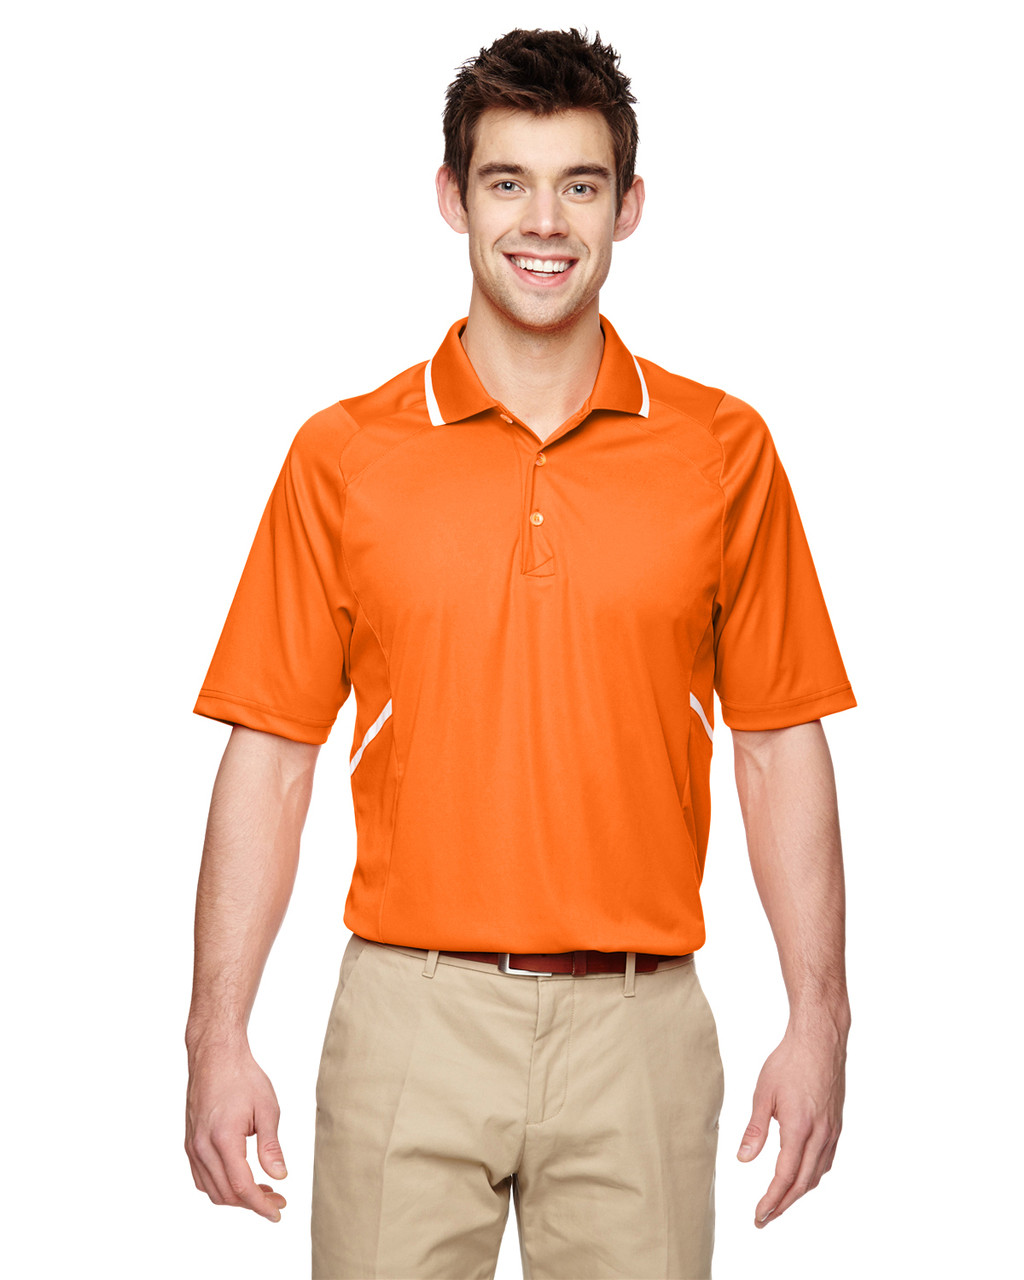 Amber Orange - Extreme Eperformance Propel Interlock Polo Shirt with Contrast Tape